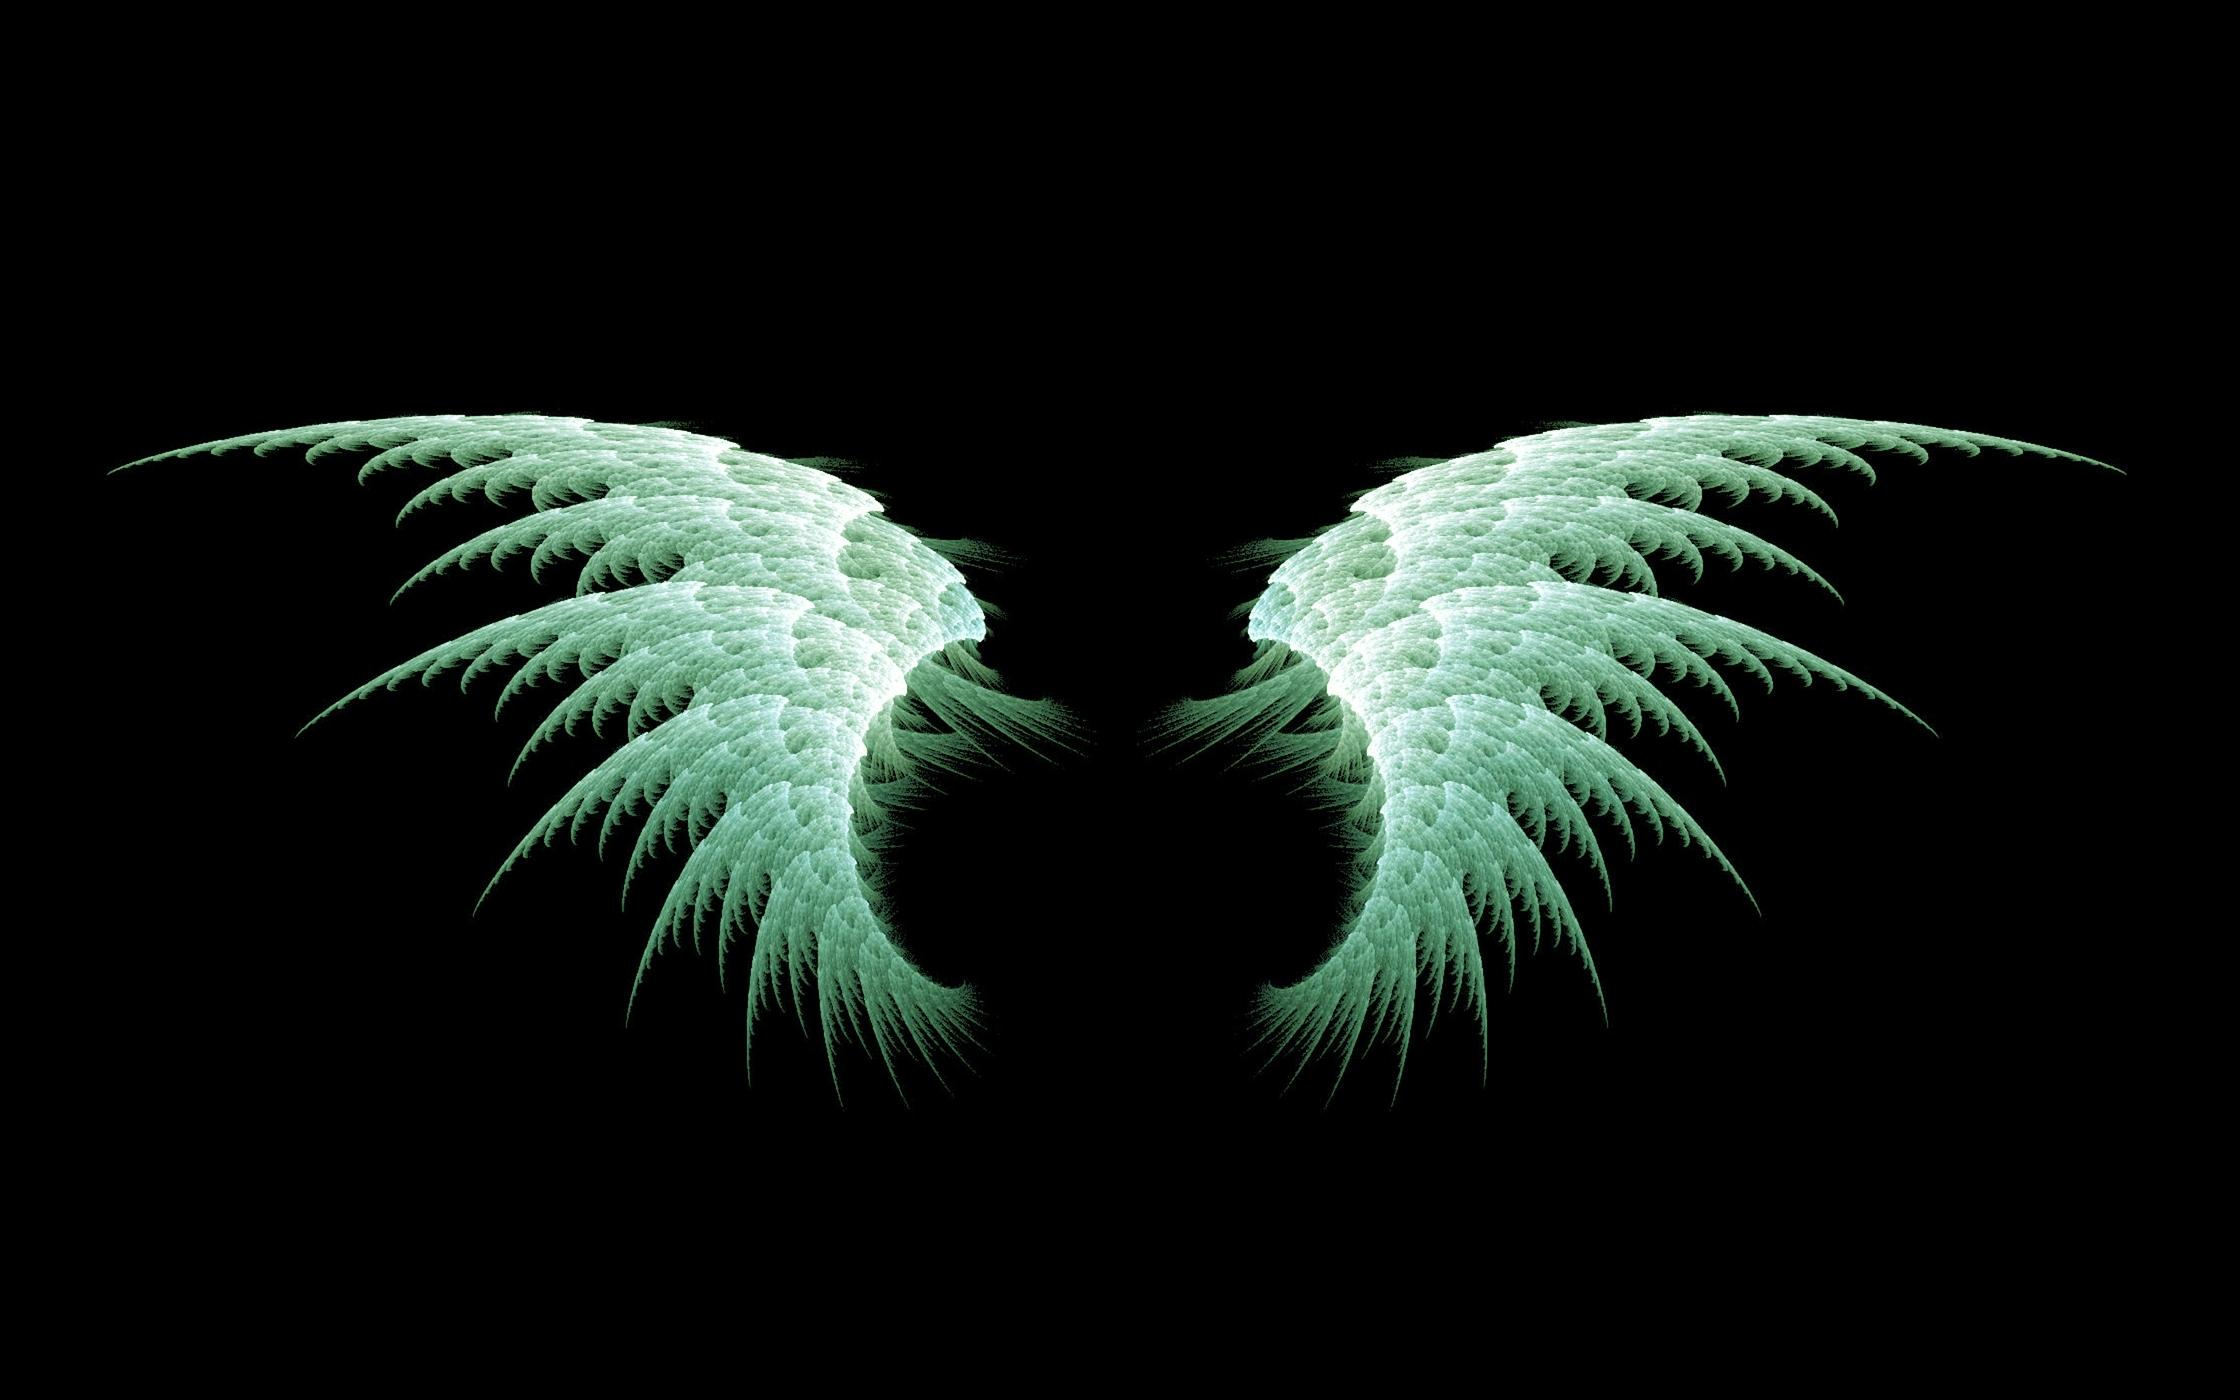 Wallpaper Hd For Mobile Free Download Girl Anime Angel Wings Pixelstalk Net